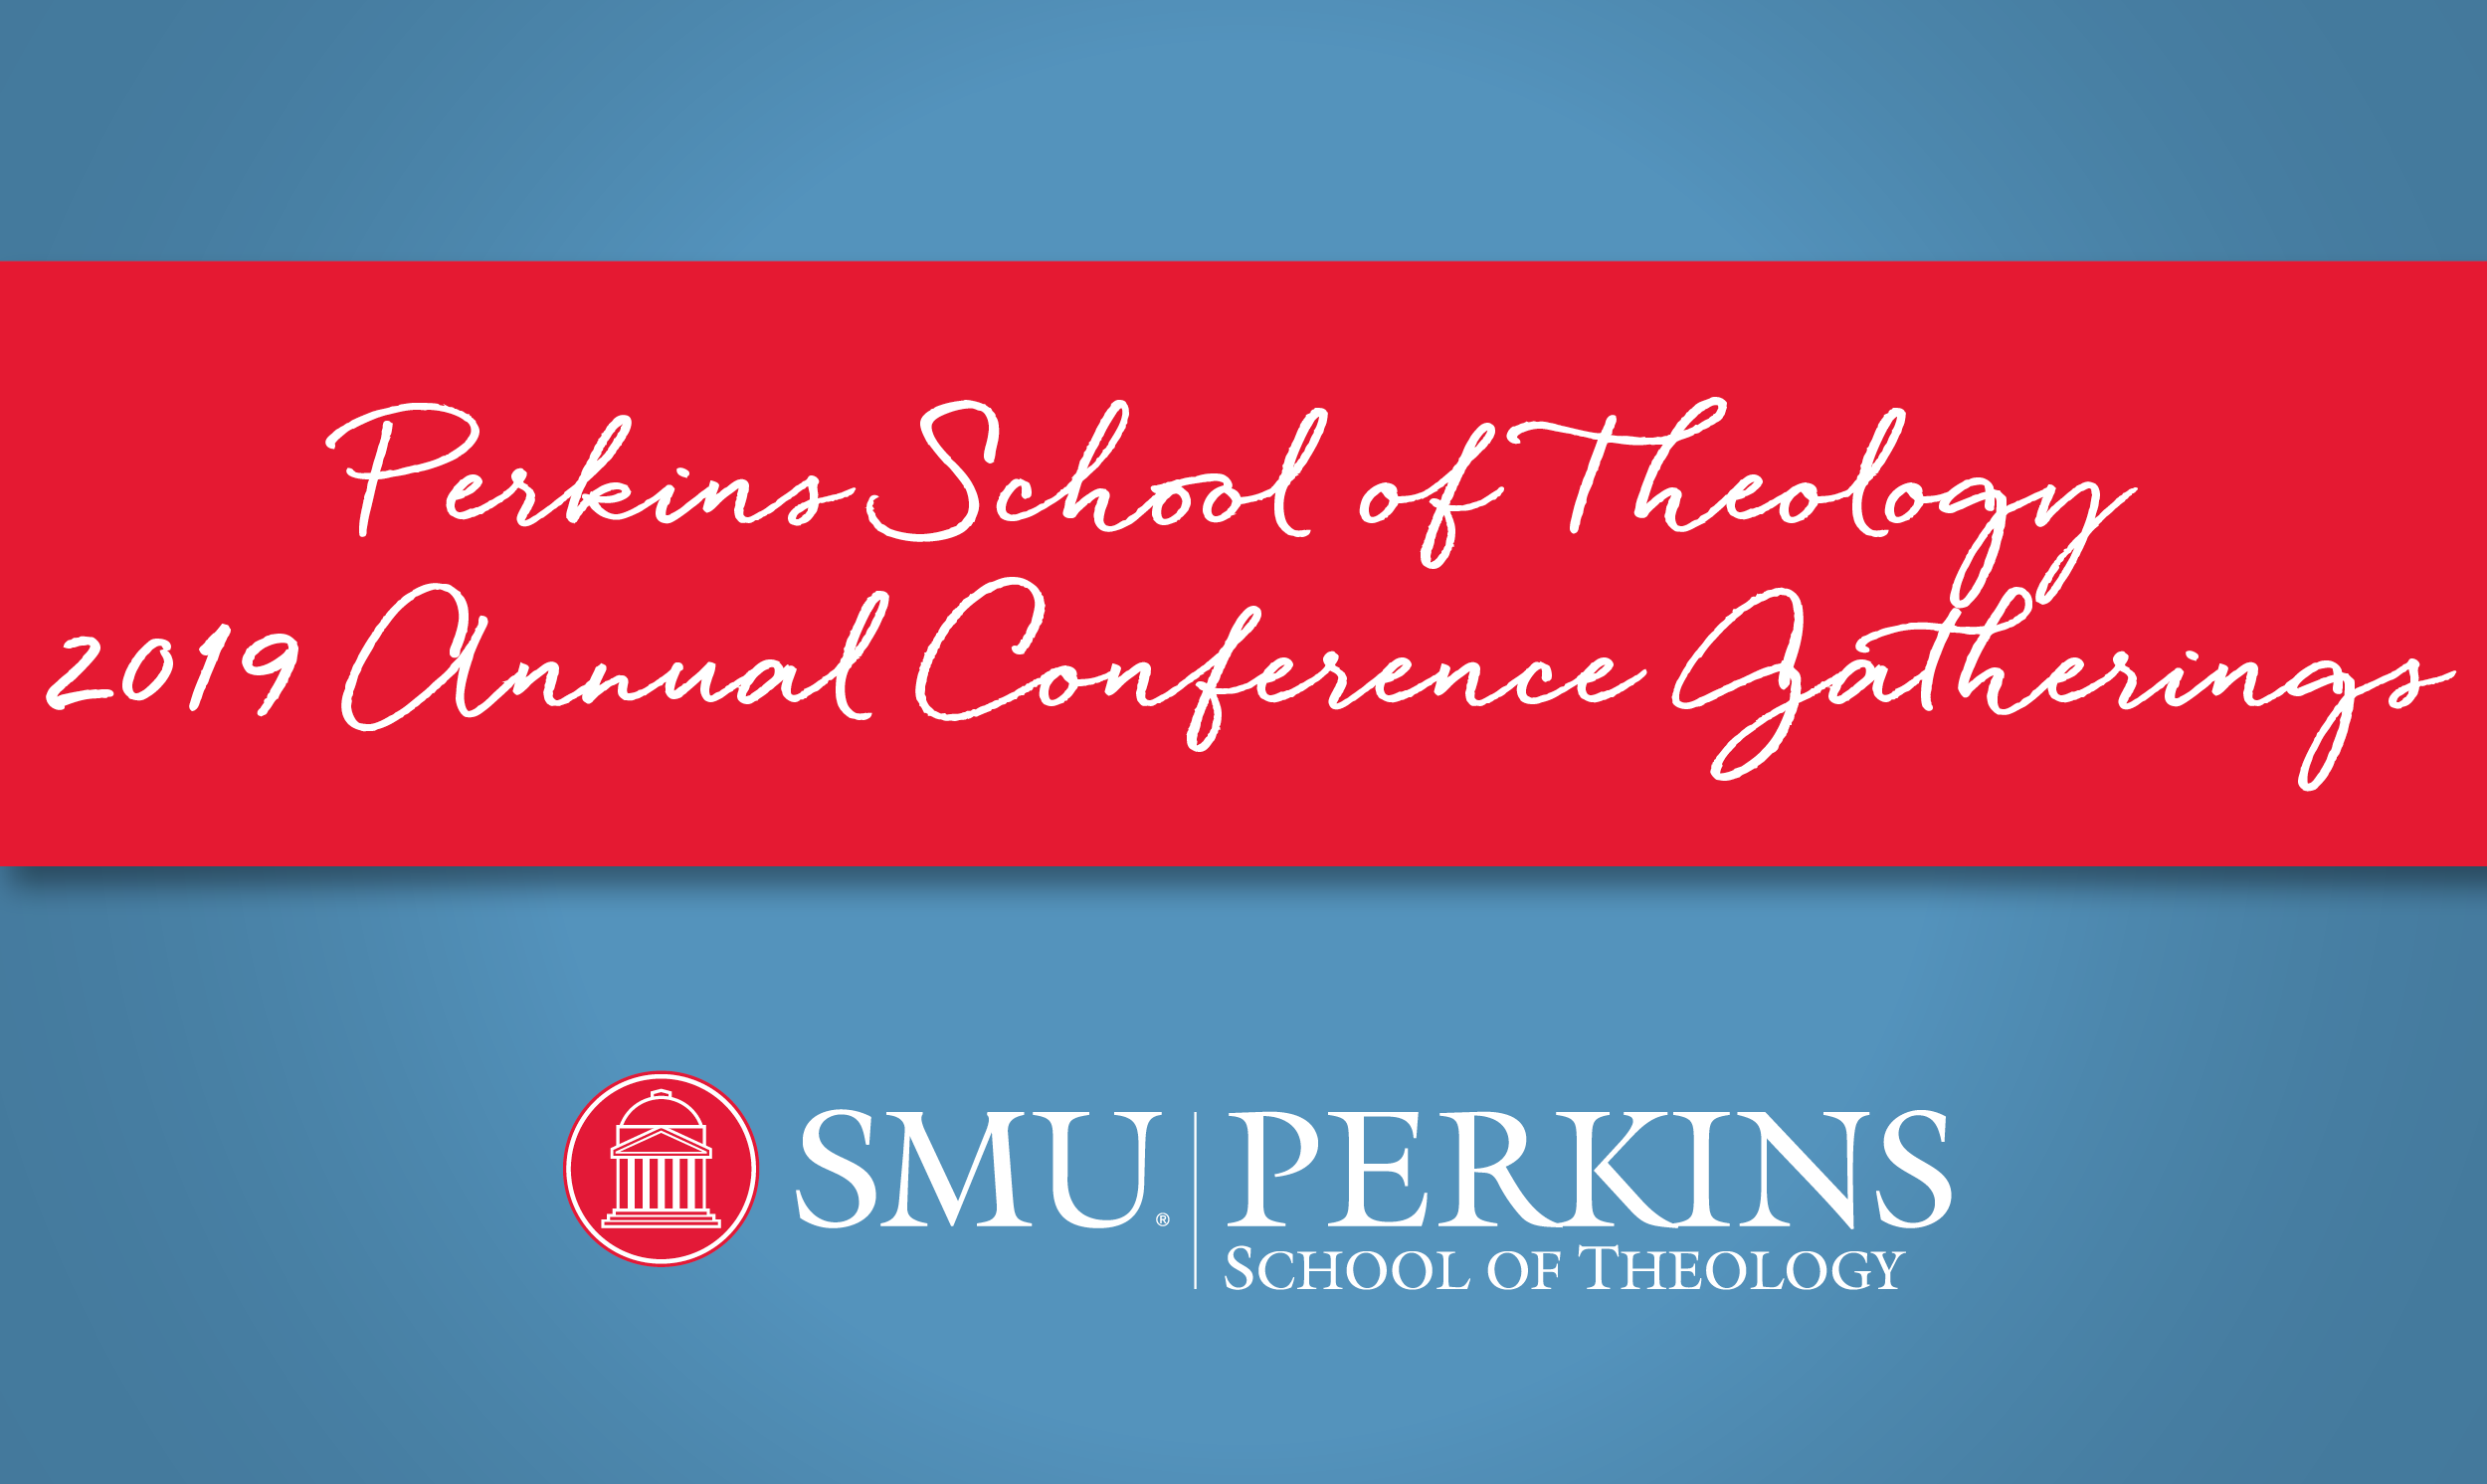 Smu Academic Calendar 2019 SMU Perkins School of Theology   SMU